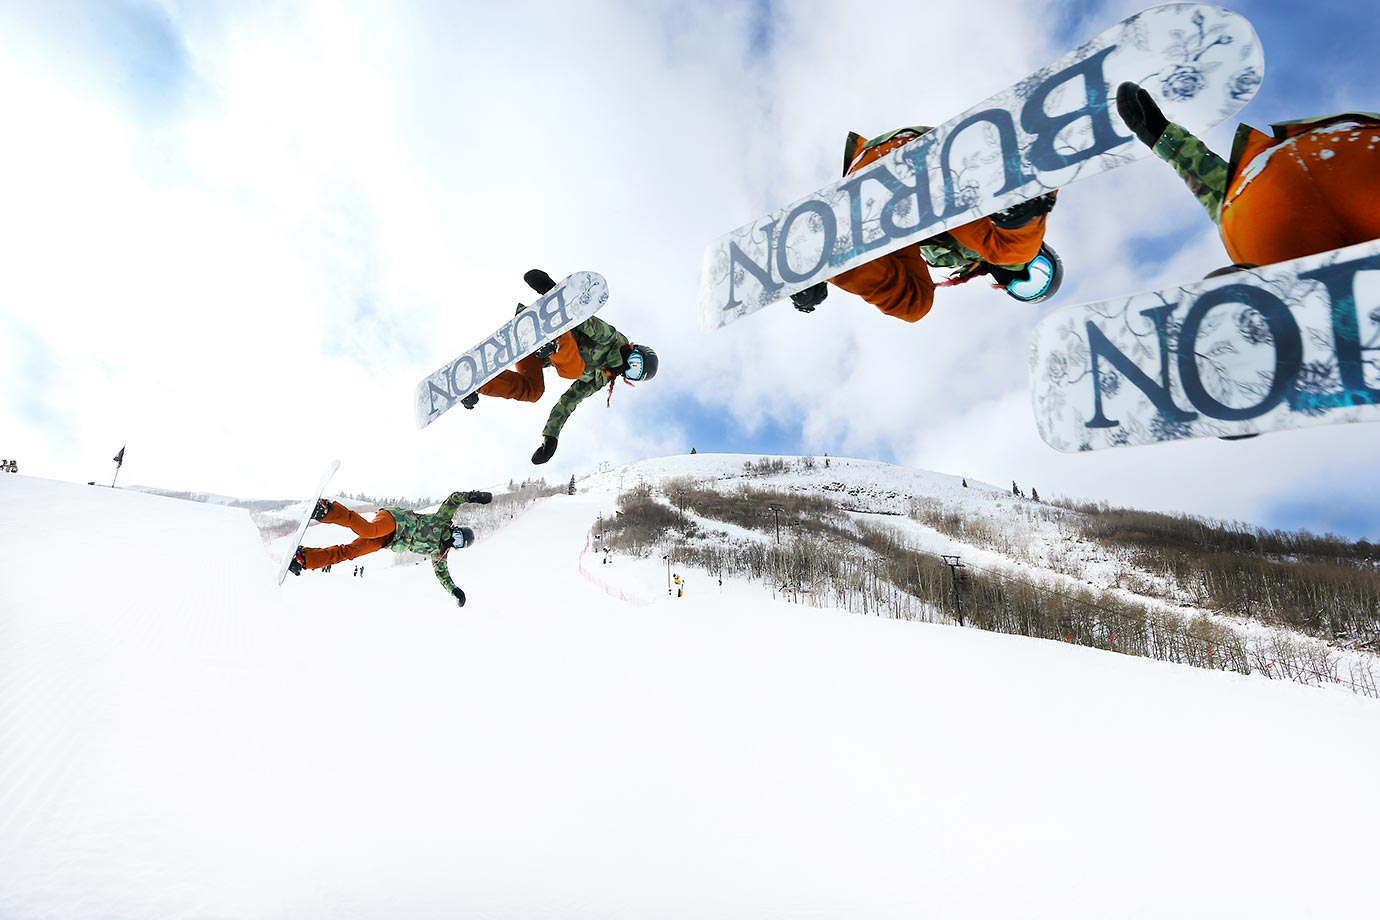 Teenage snowboarding phenom Chloe Kim of La Palma, Calif., gets some air during her practice training sessions on the halfpipe at the Park City Ski Resort in Utah.